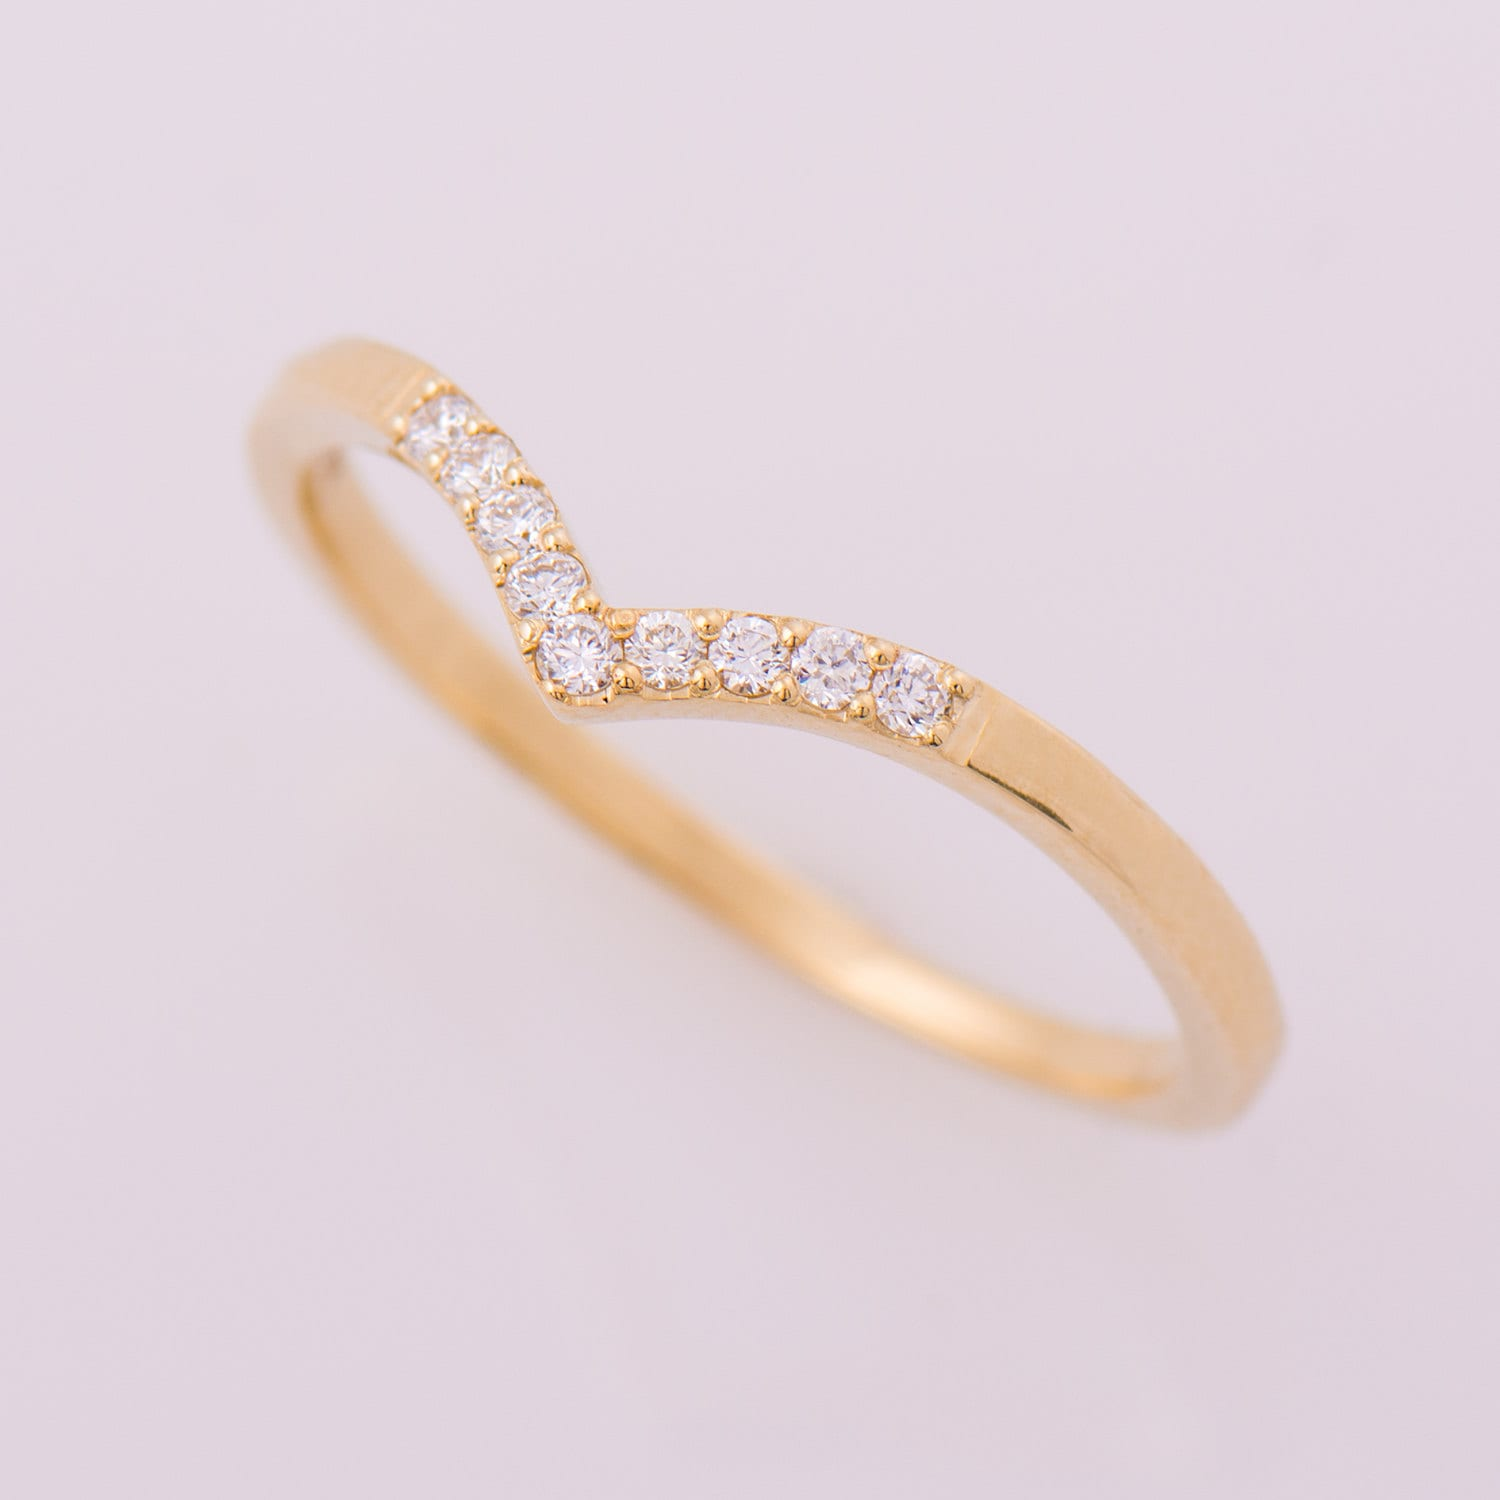 bzvv ringthin bands gold bandtinsel band listing il with bandthin fullxfull diamonds wedding zoom thin white